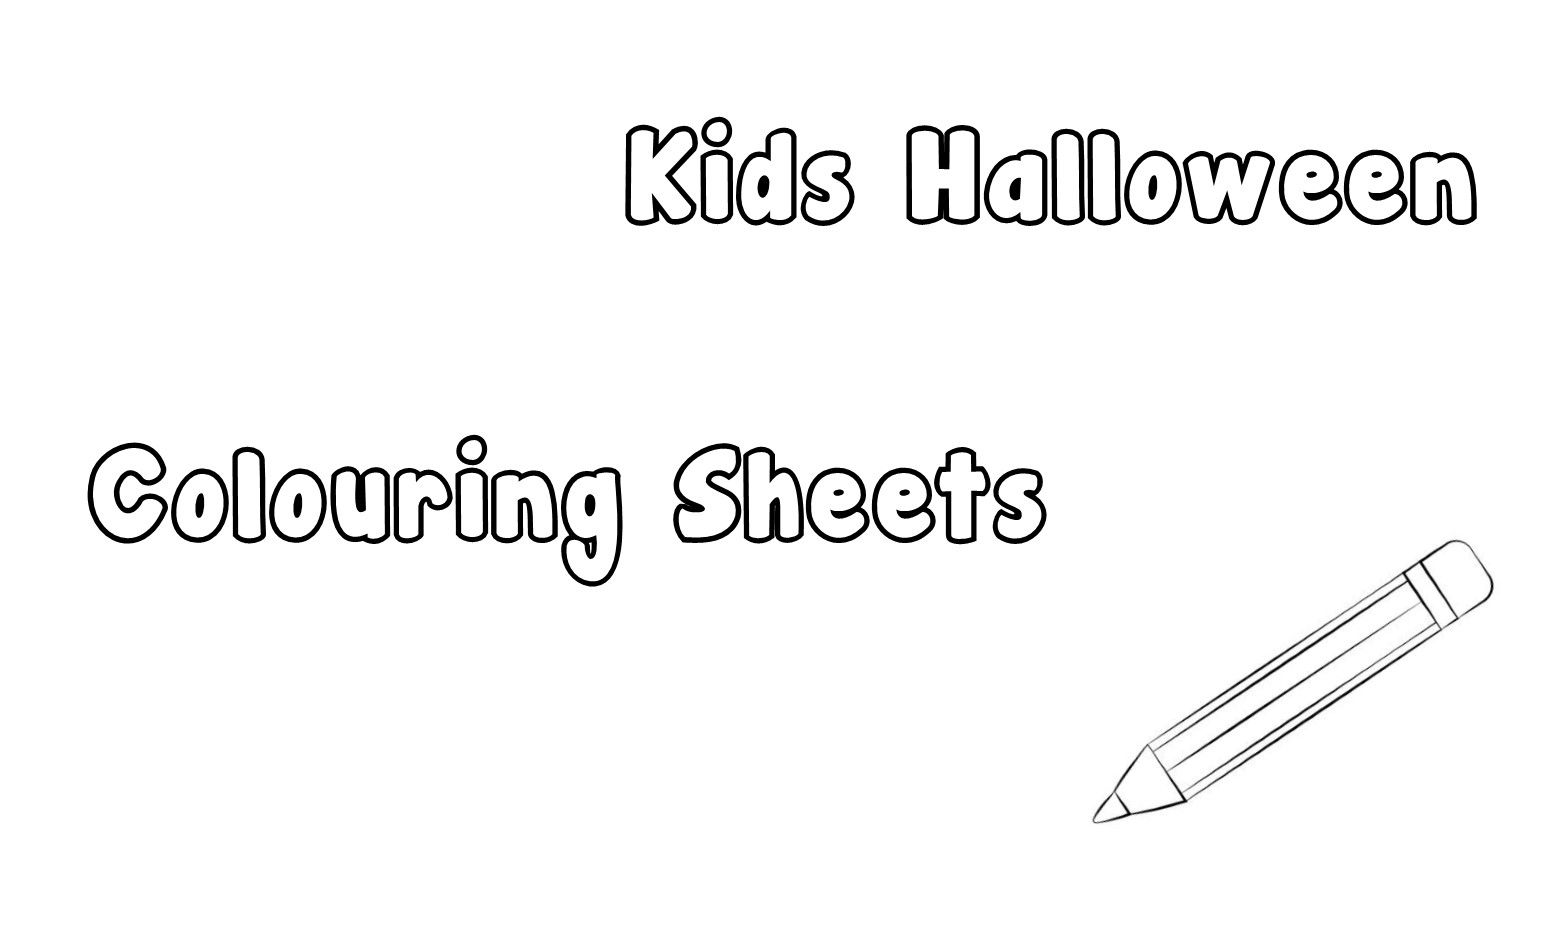 Printable Halloween Colouring Sheets for the Kids